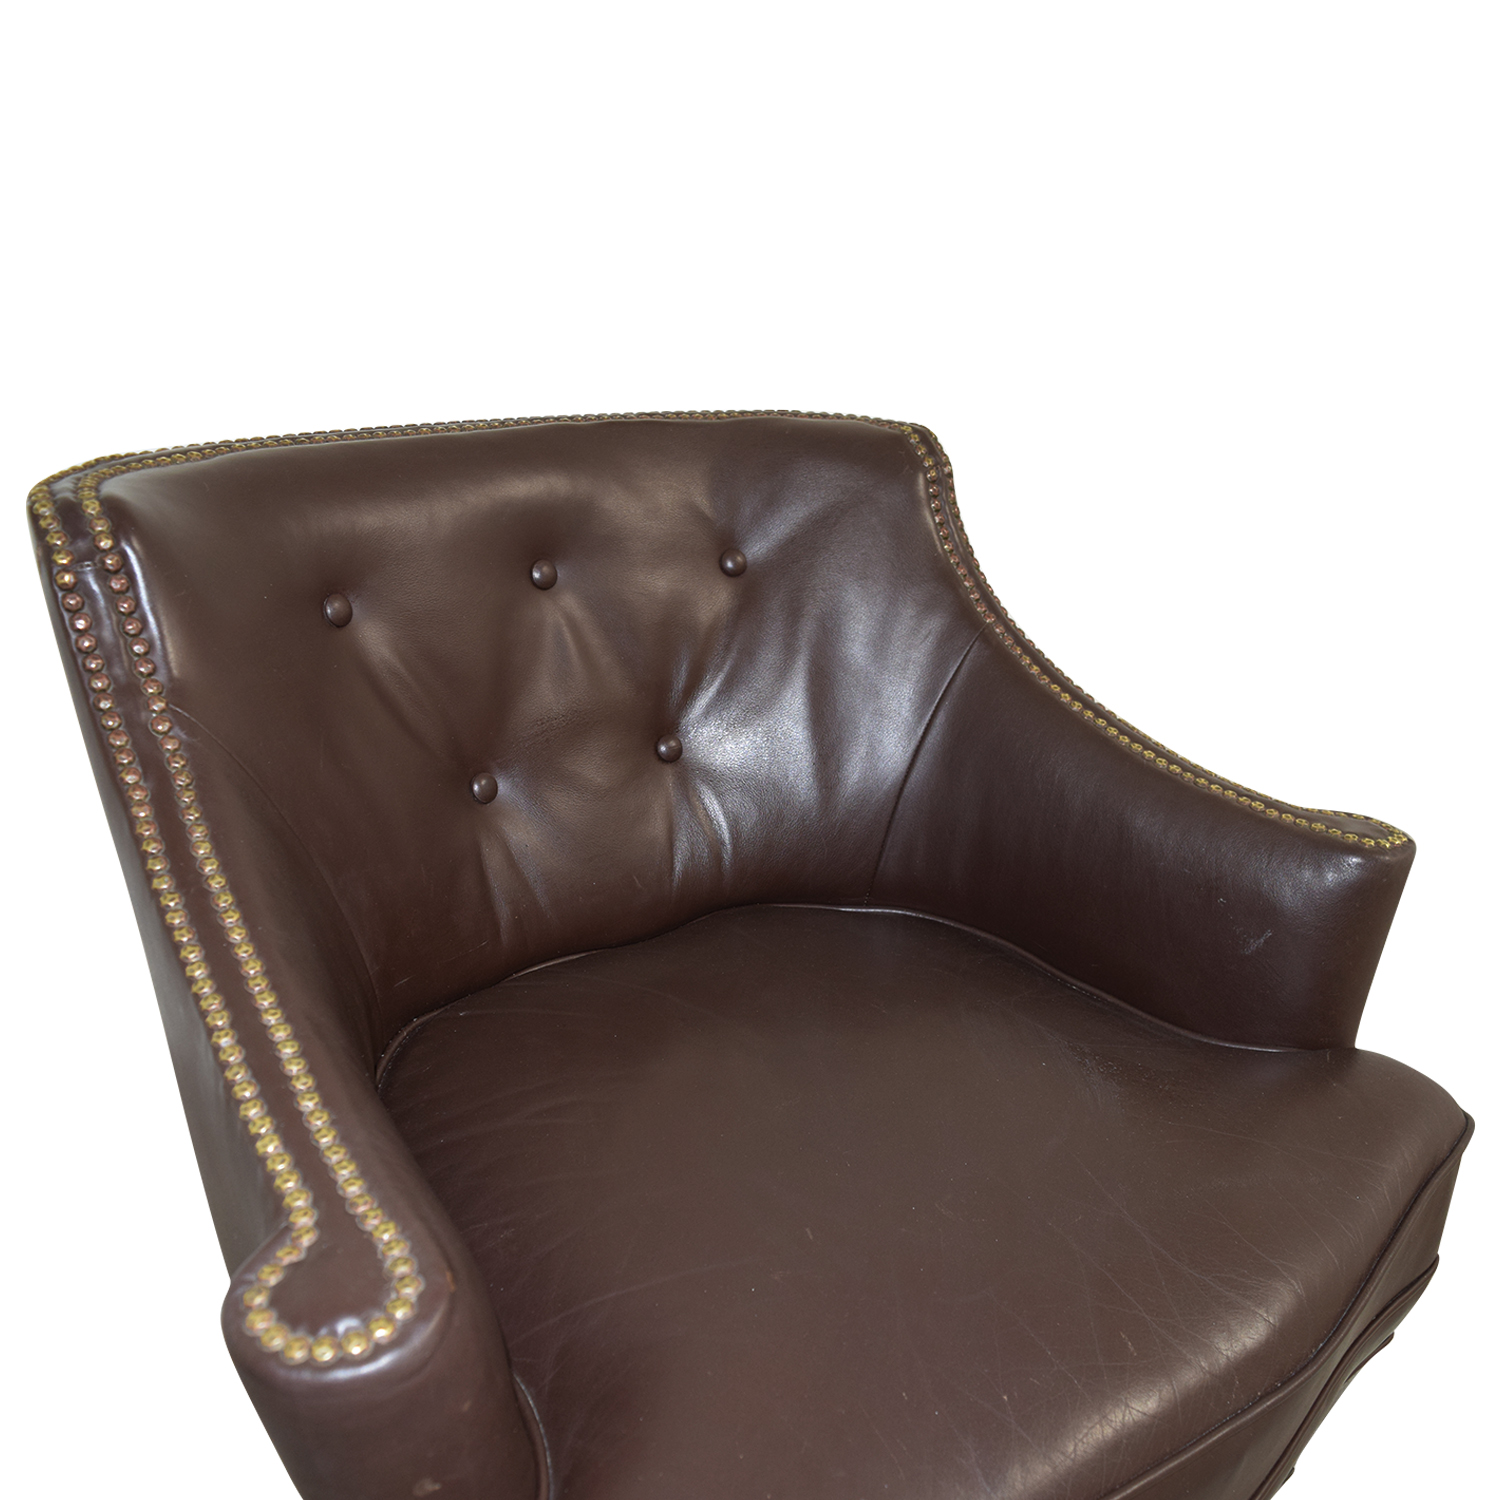 70% OFF - Pier 1 Imports Pier 1 Imports Brown Leather ...